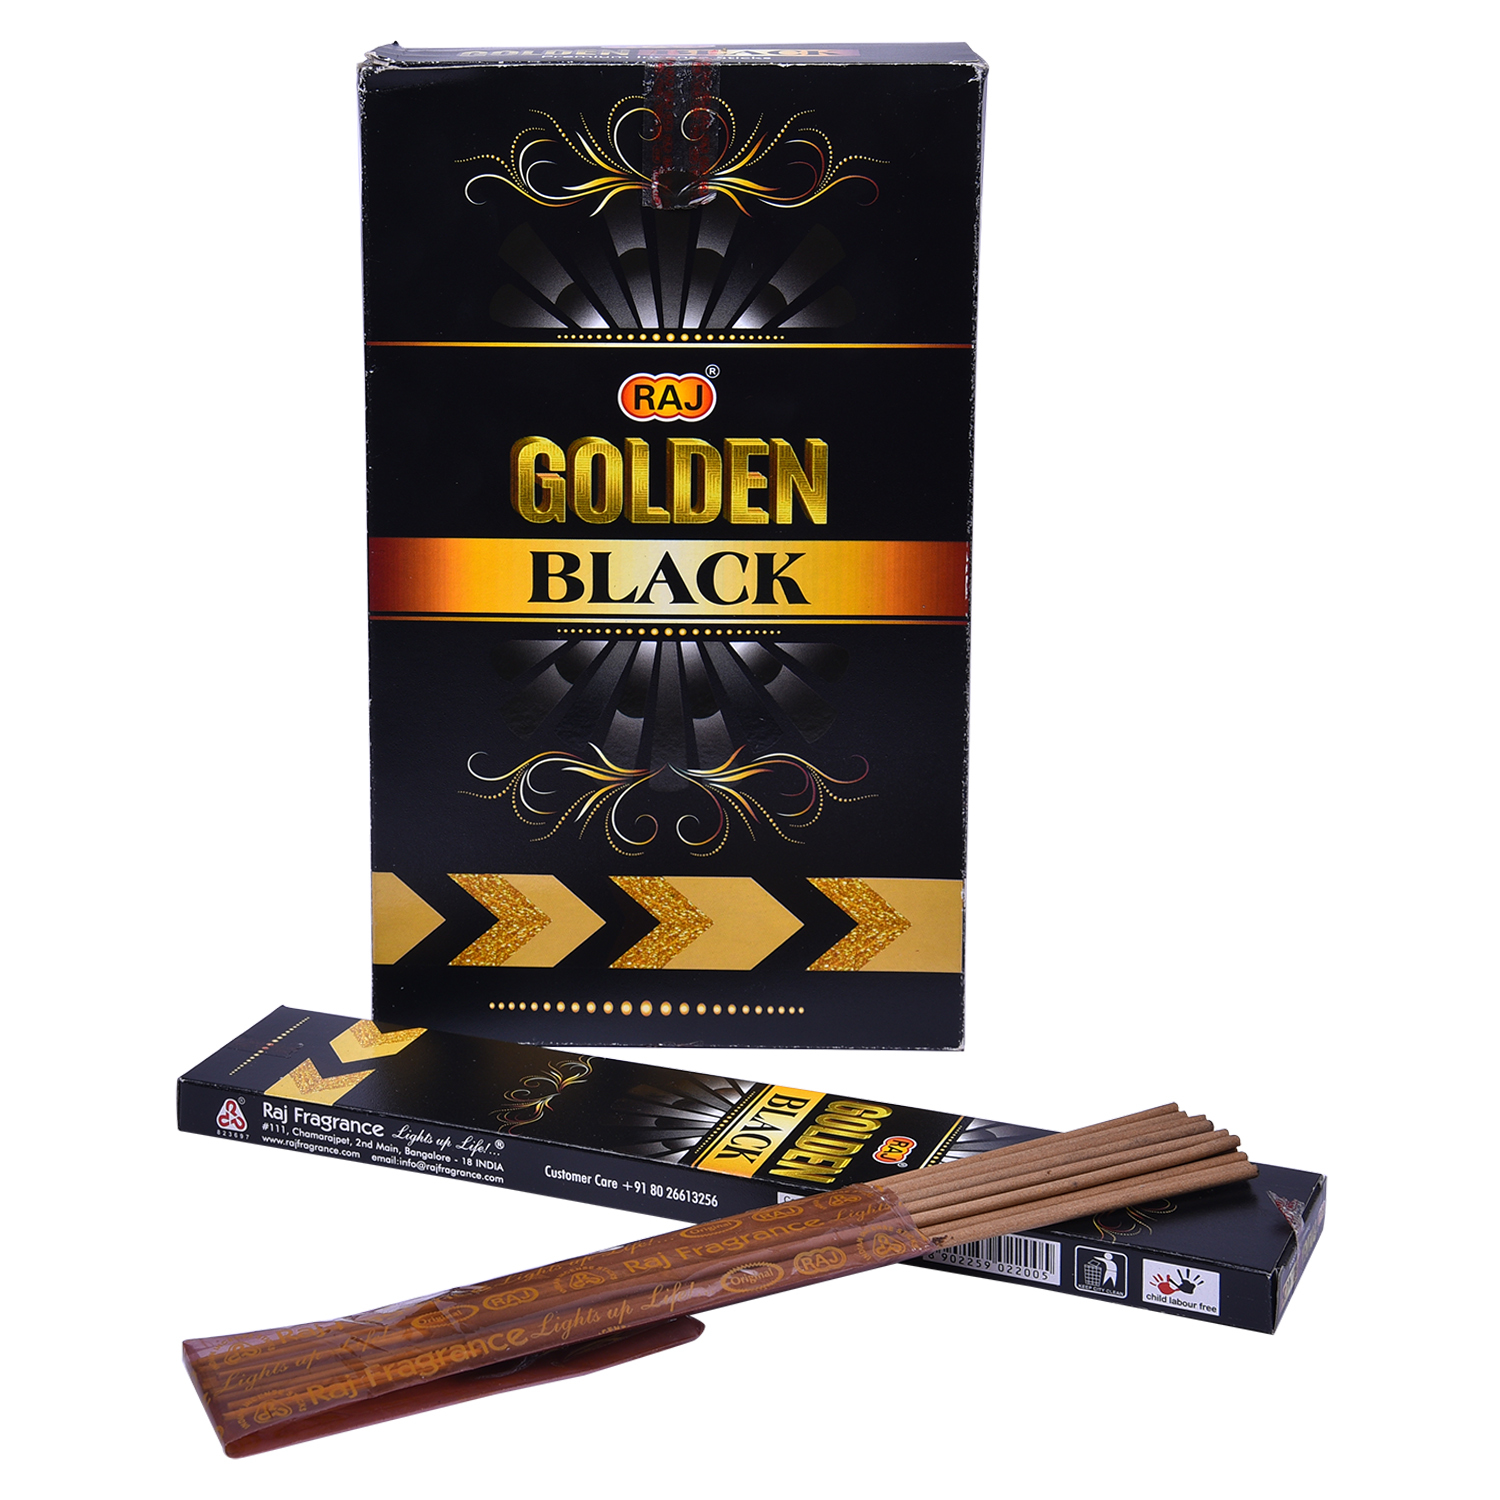 Raj golden black